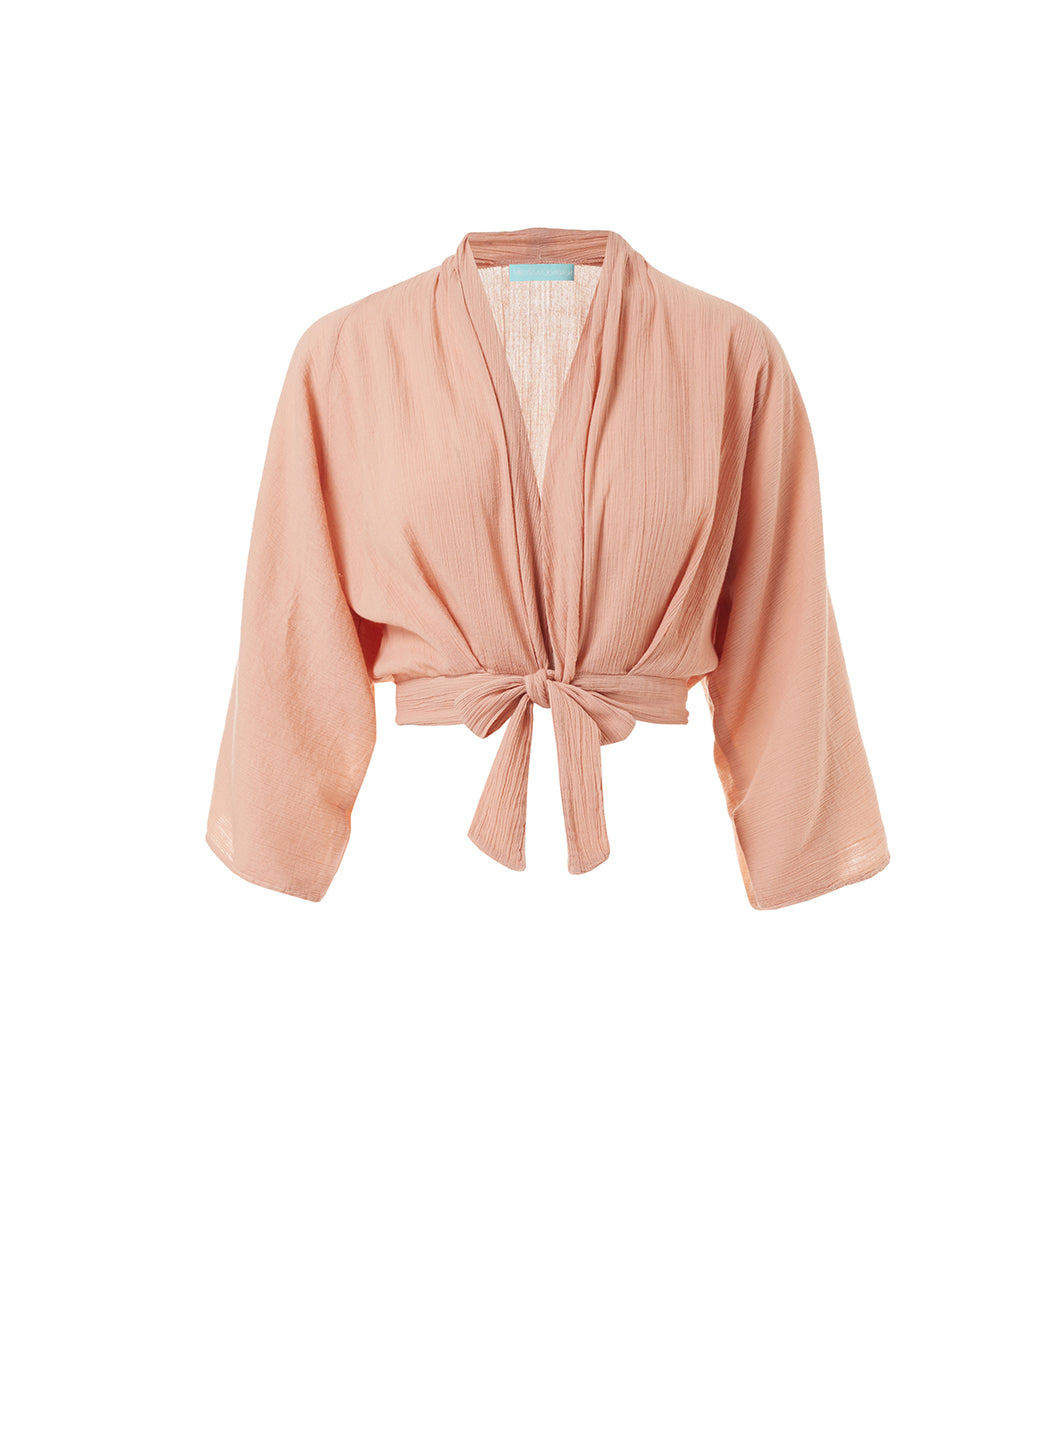 Mila Tan Tie-Front Cropped Blouse - Melissa Odabash Shop All